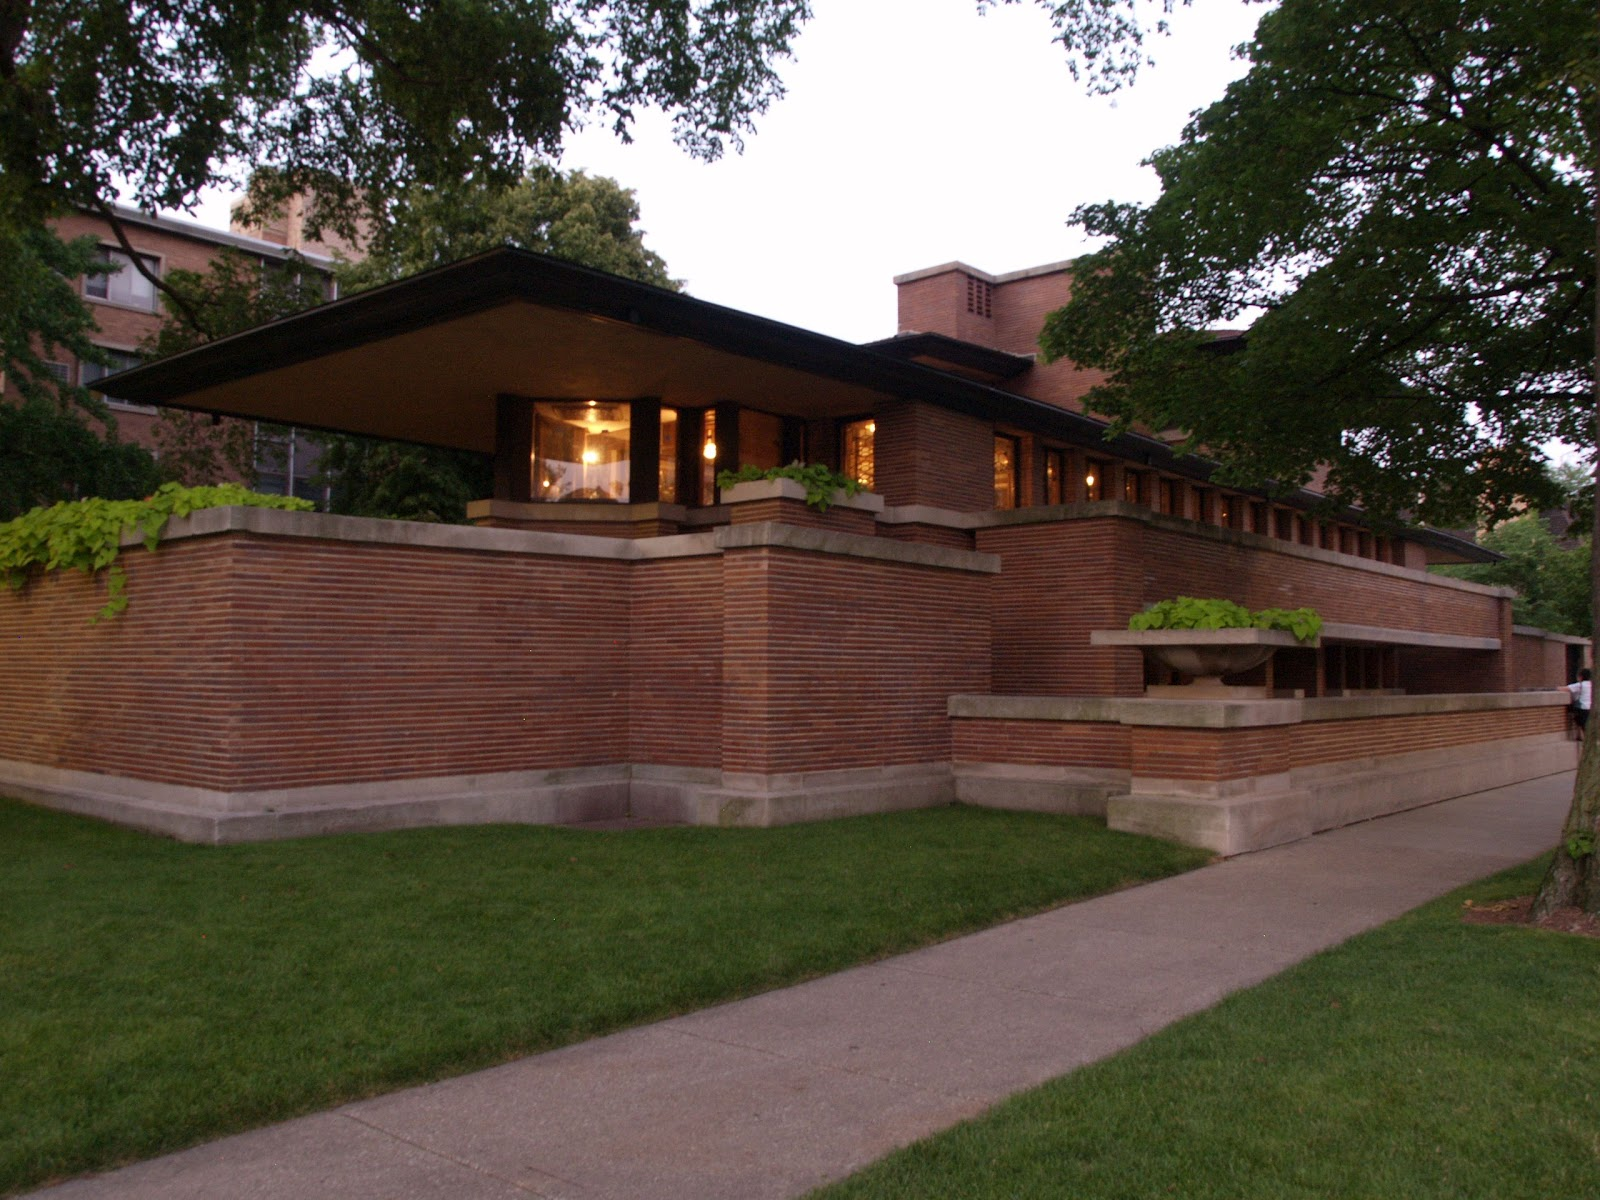 Sketchup vray artists sva rendering challenge the robie house - Frank lloyd wright designs ...